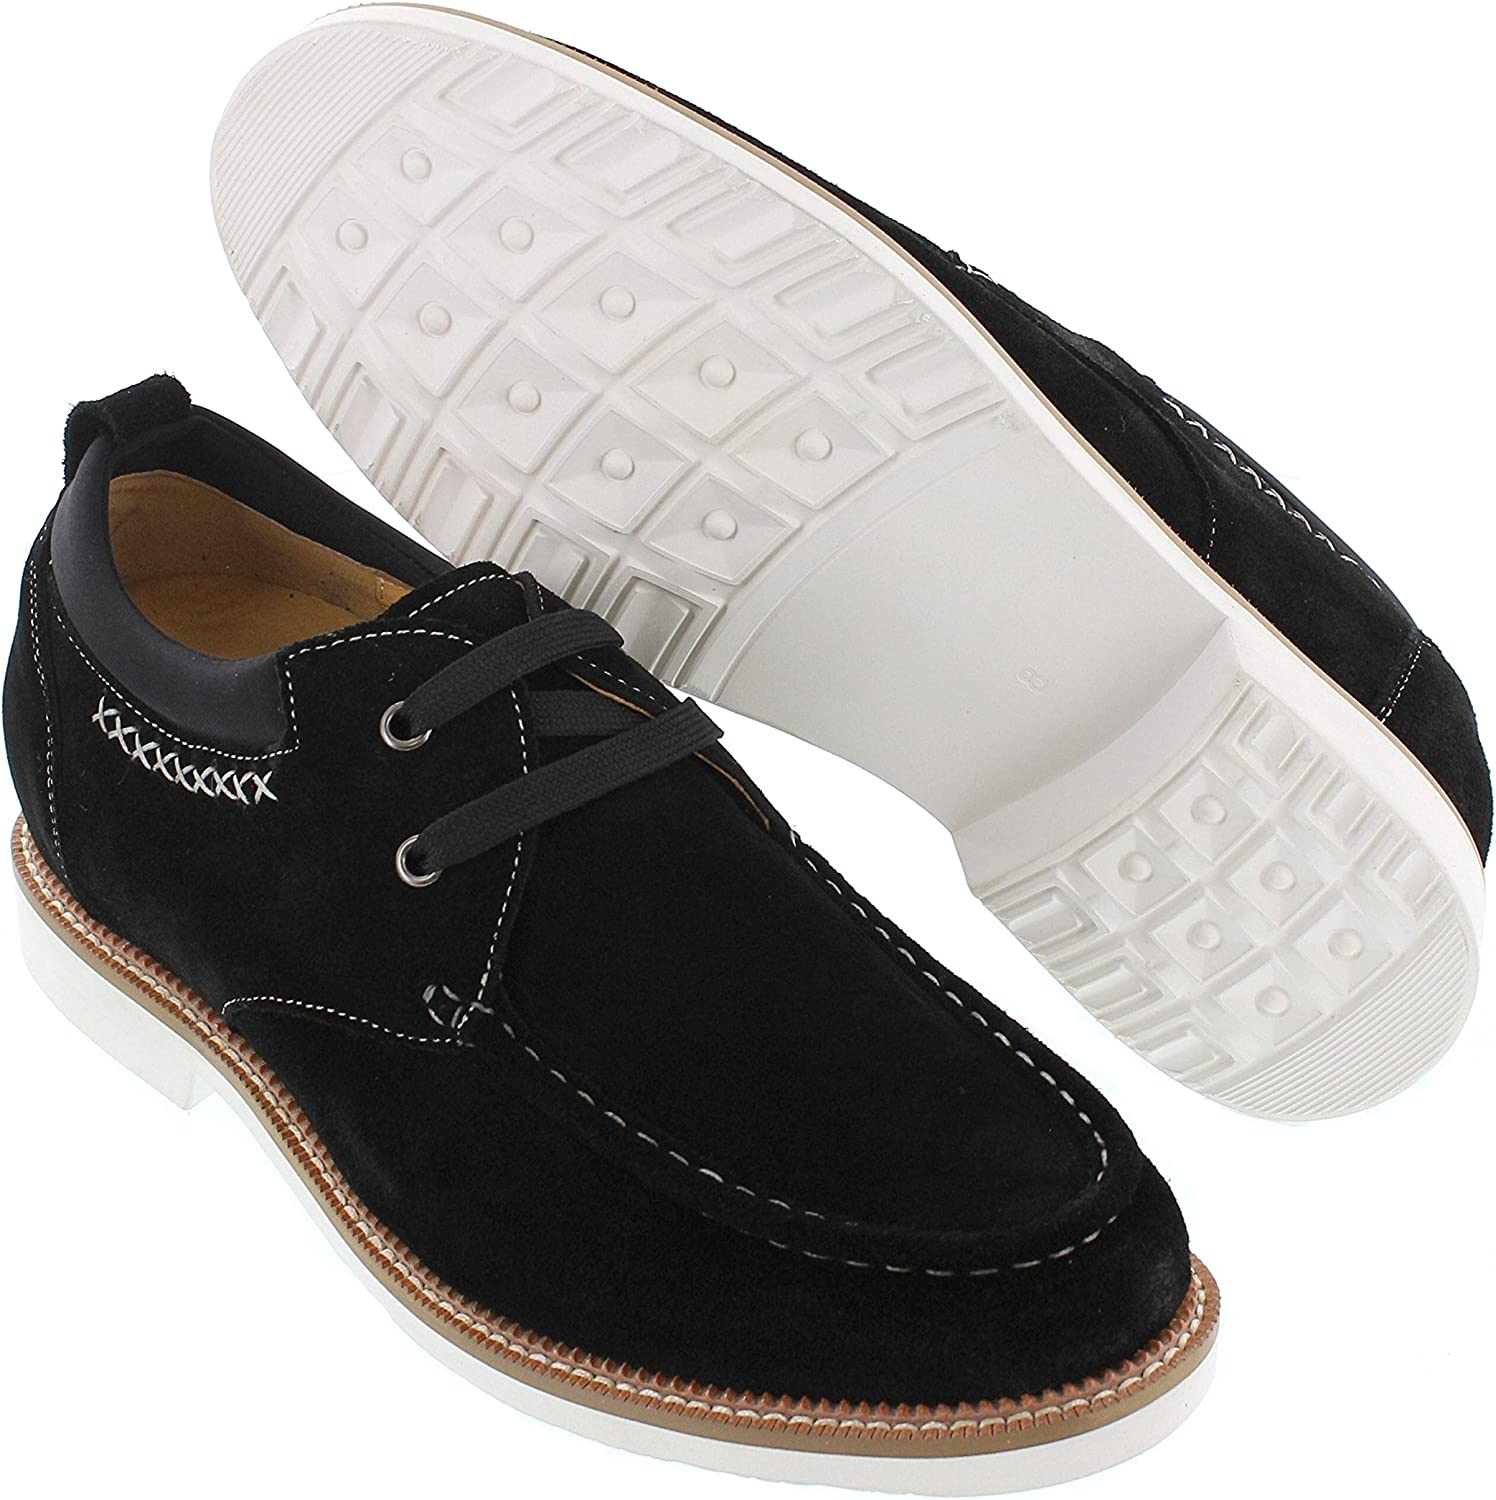 CALTO Men's Invisible Height Increasing Elevator Shoes - Black Suede Leather Lightweight Lace-up Casual Oxfords - 2.8 Inches Taller - J98503